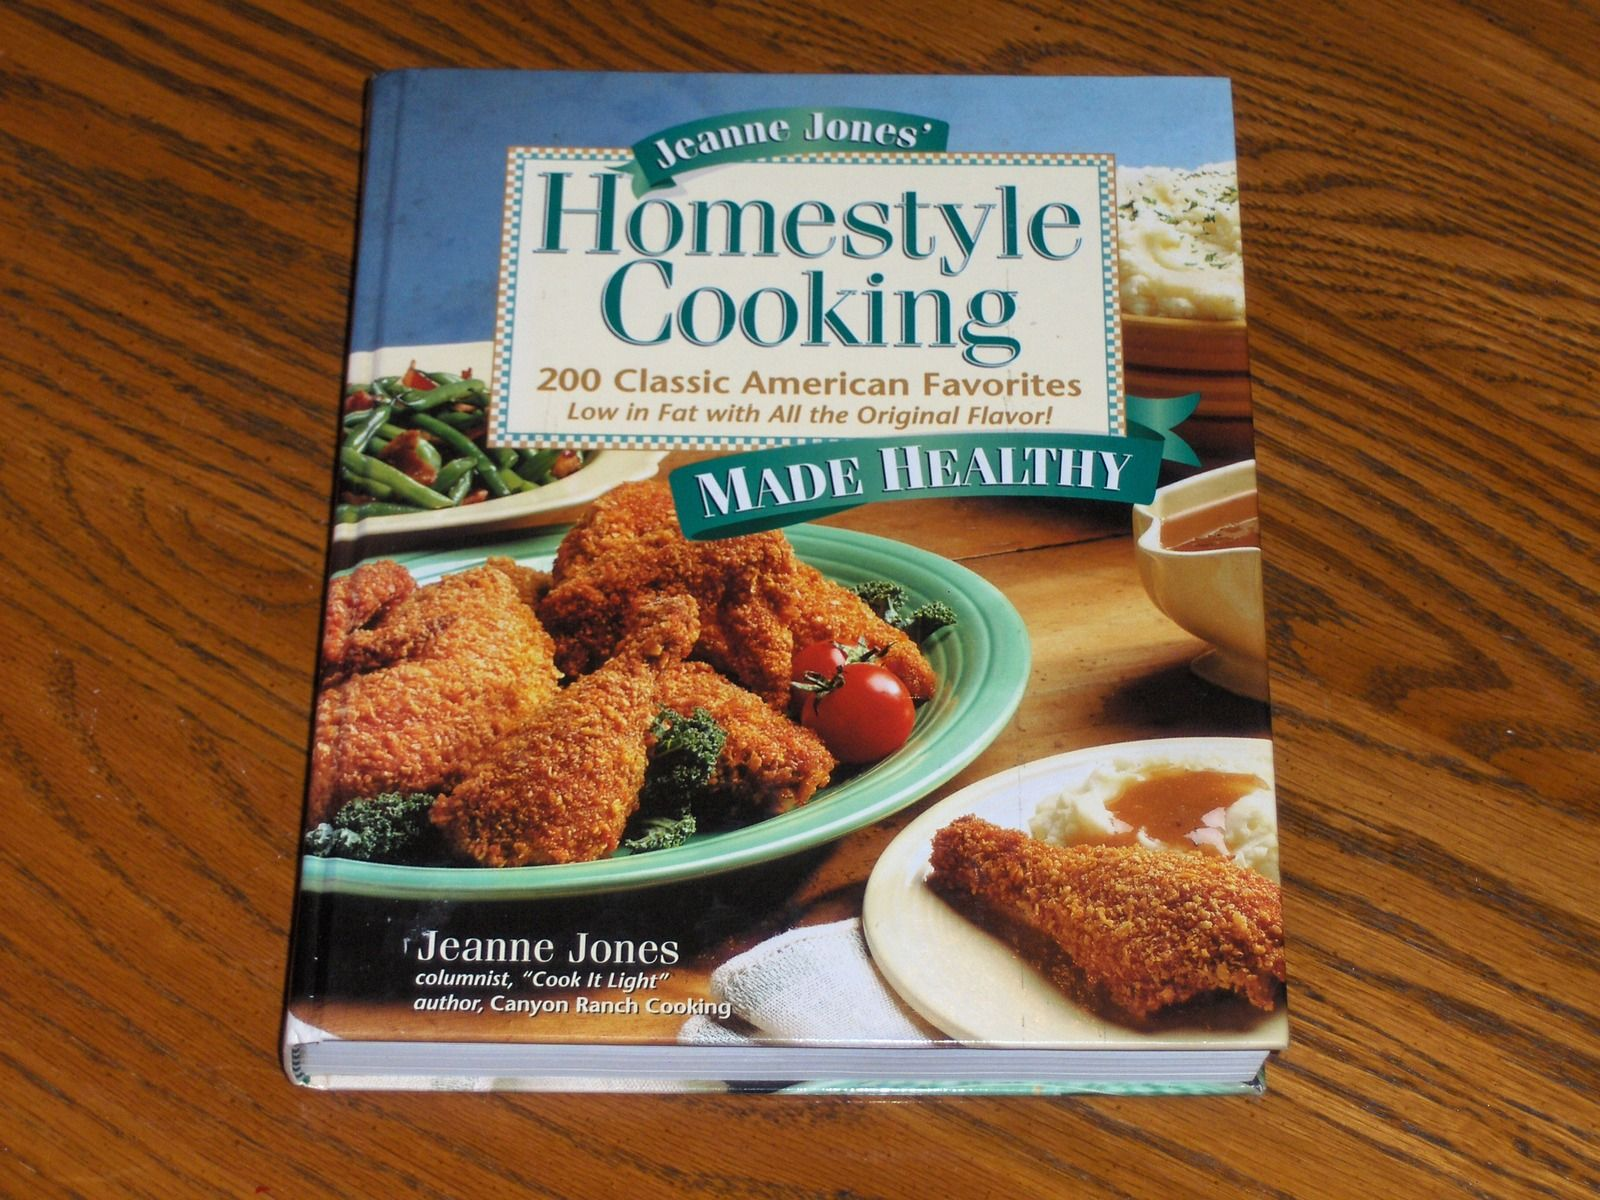 Homestyle Cooking by Jeanne Jones